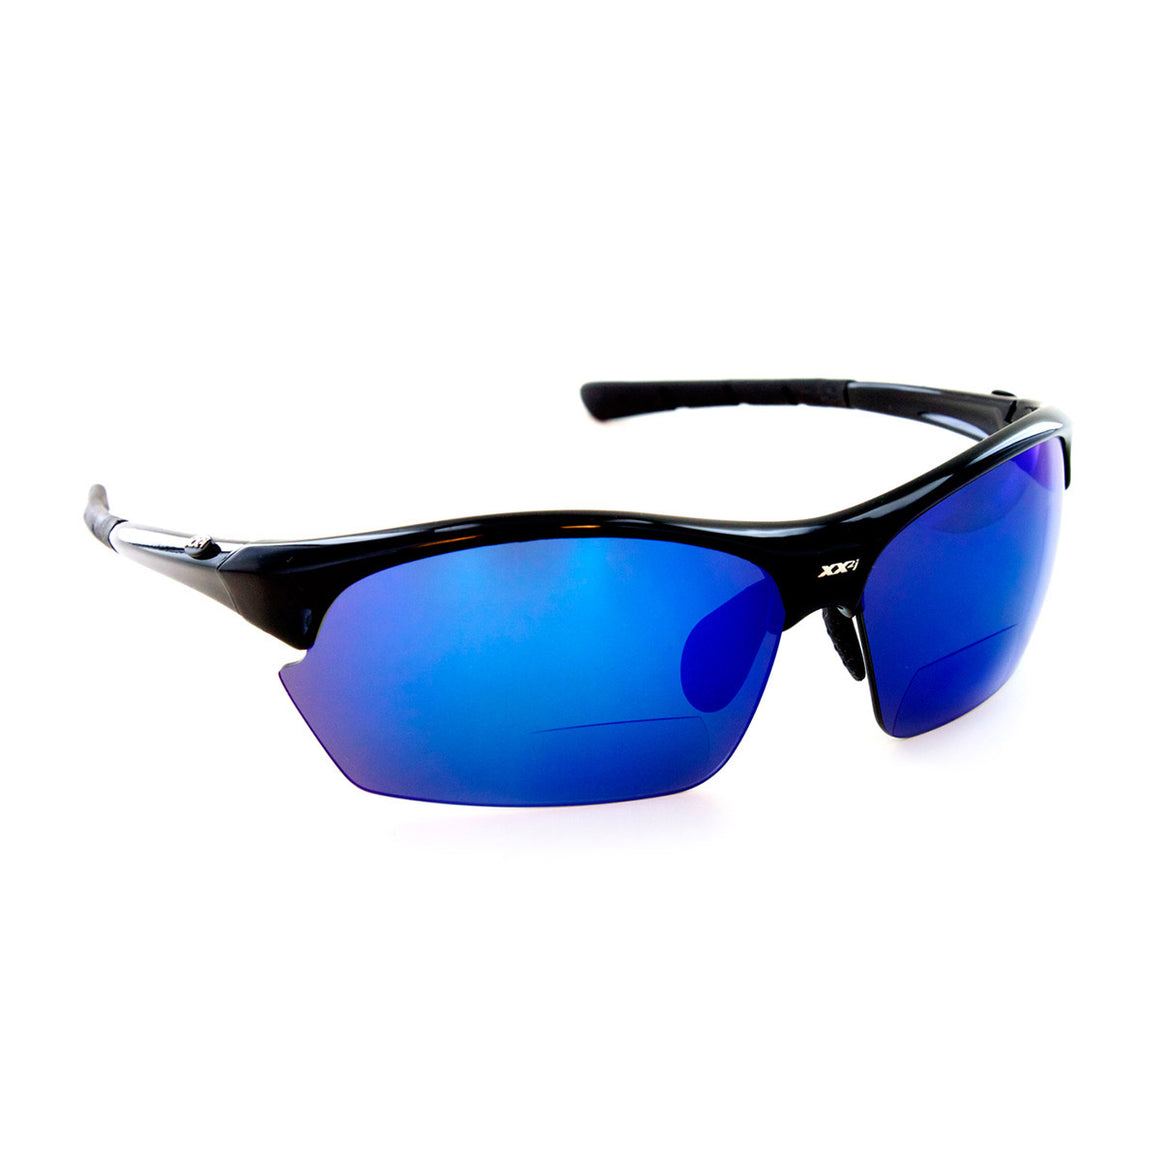 FRANCE2 POLARIZED SPORT READERS